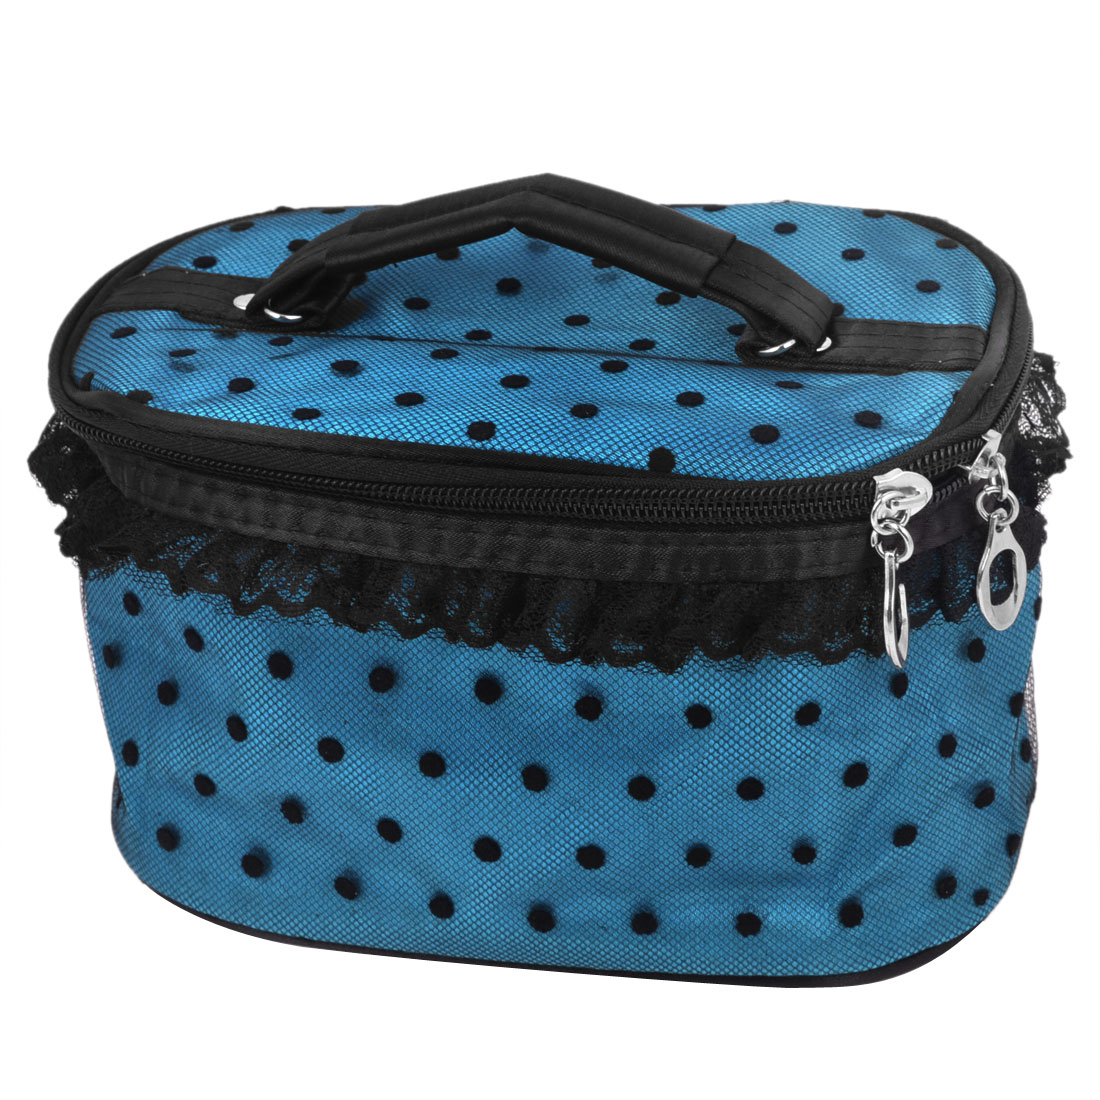 Black Dotted Teal Blue Make Up Cosmetic Bag Organizer w Mirror